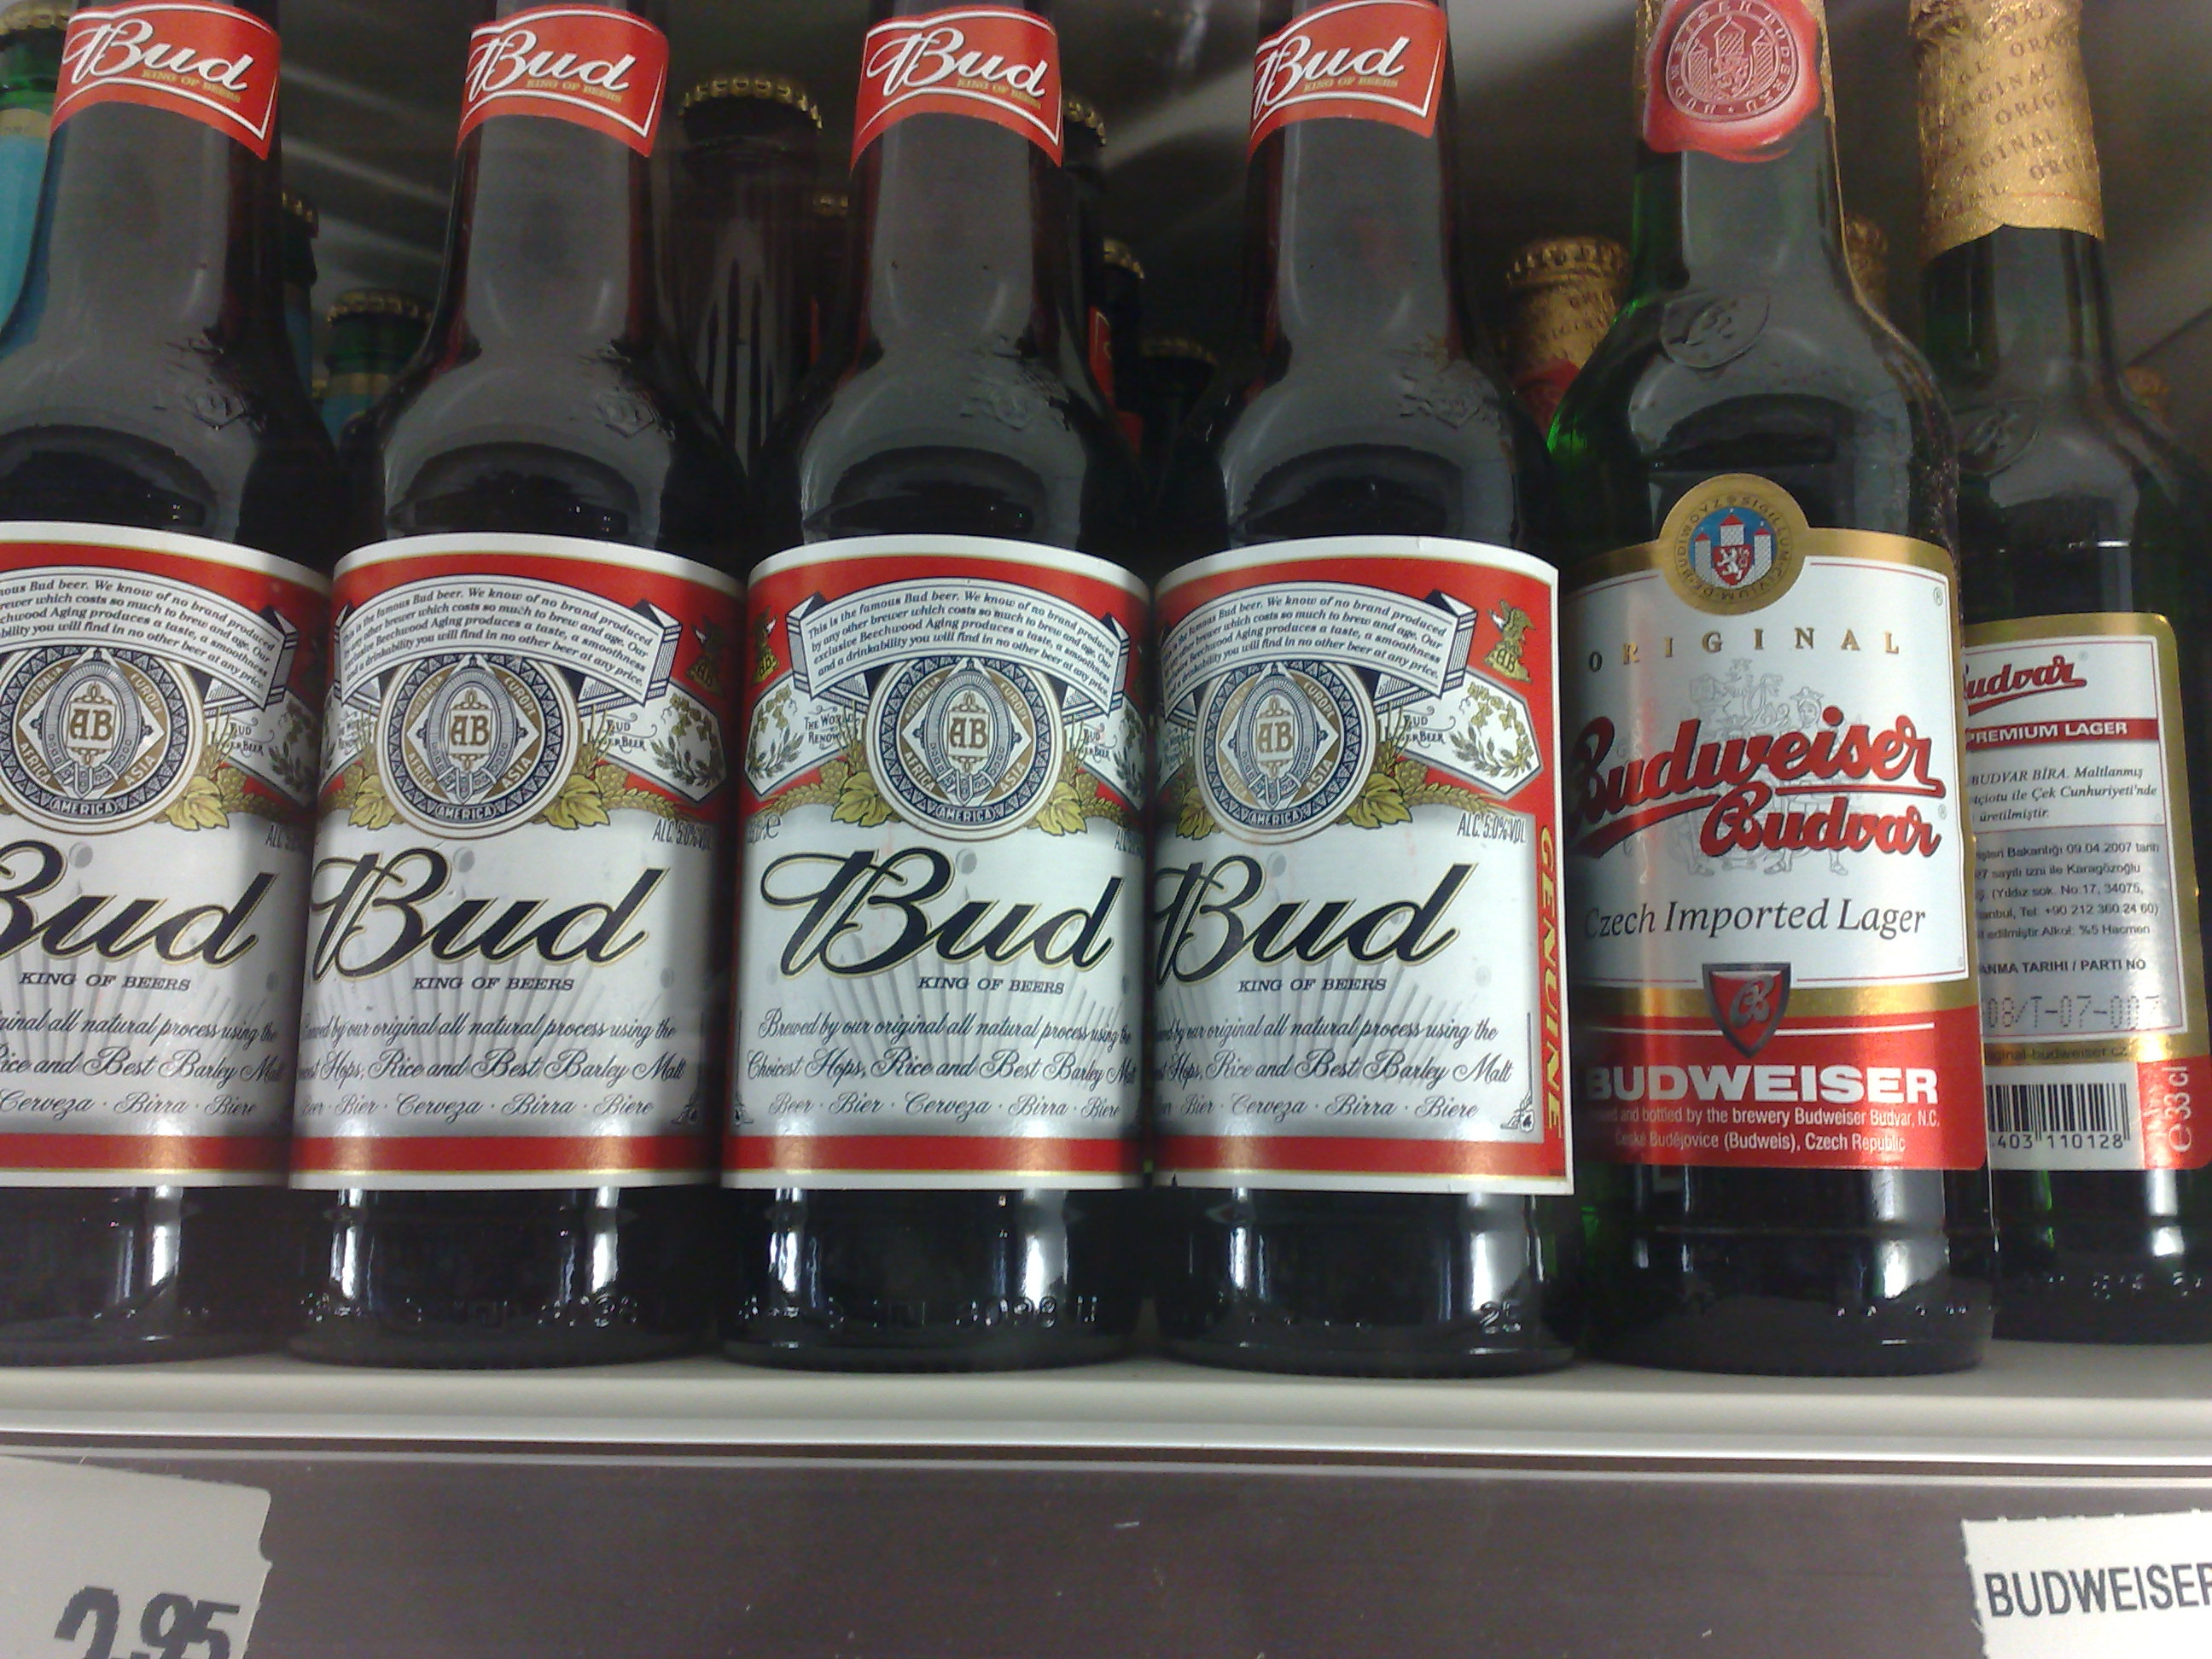 A shelf of bottled Budweiser beers